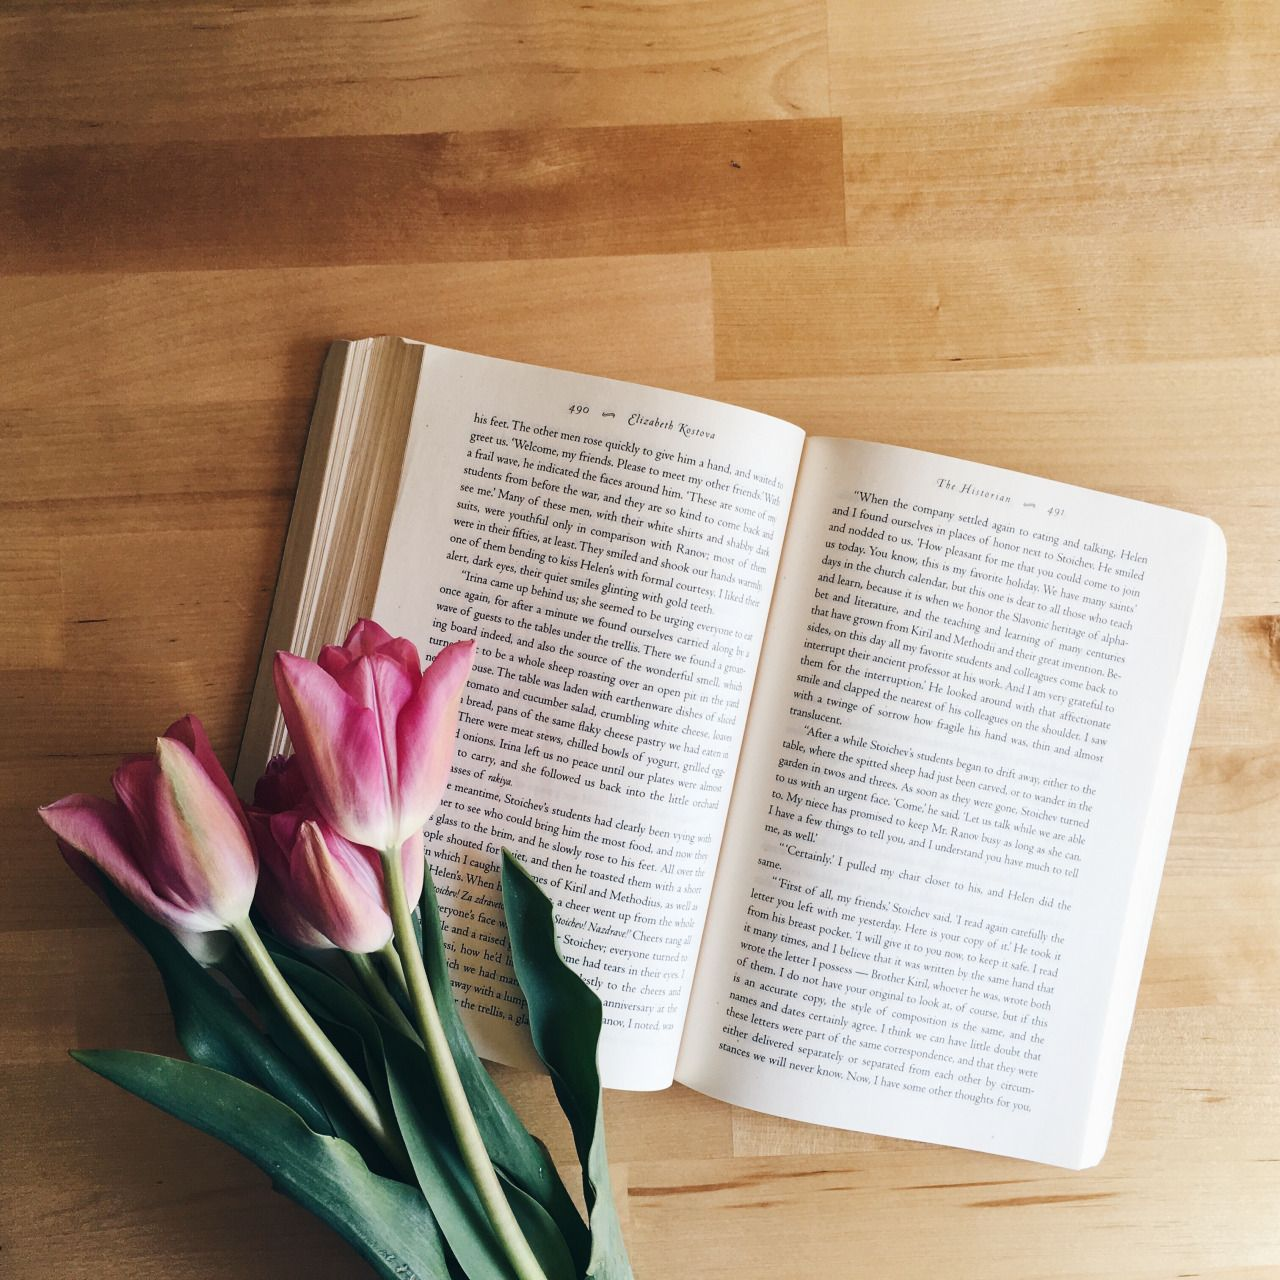 Readstoescape Books And Tulips My Heart Book Flowers Bookstagram Inspiration Book Photography